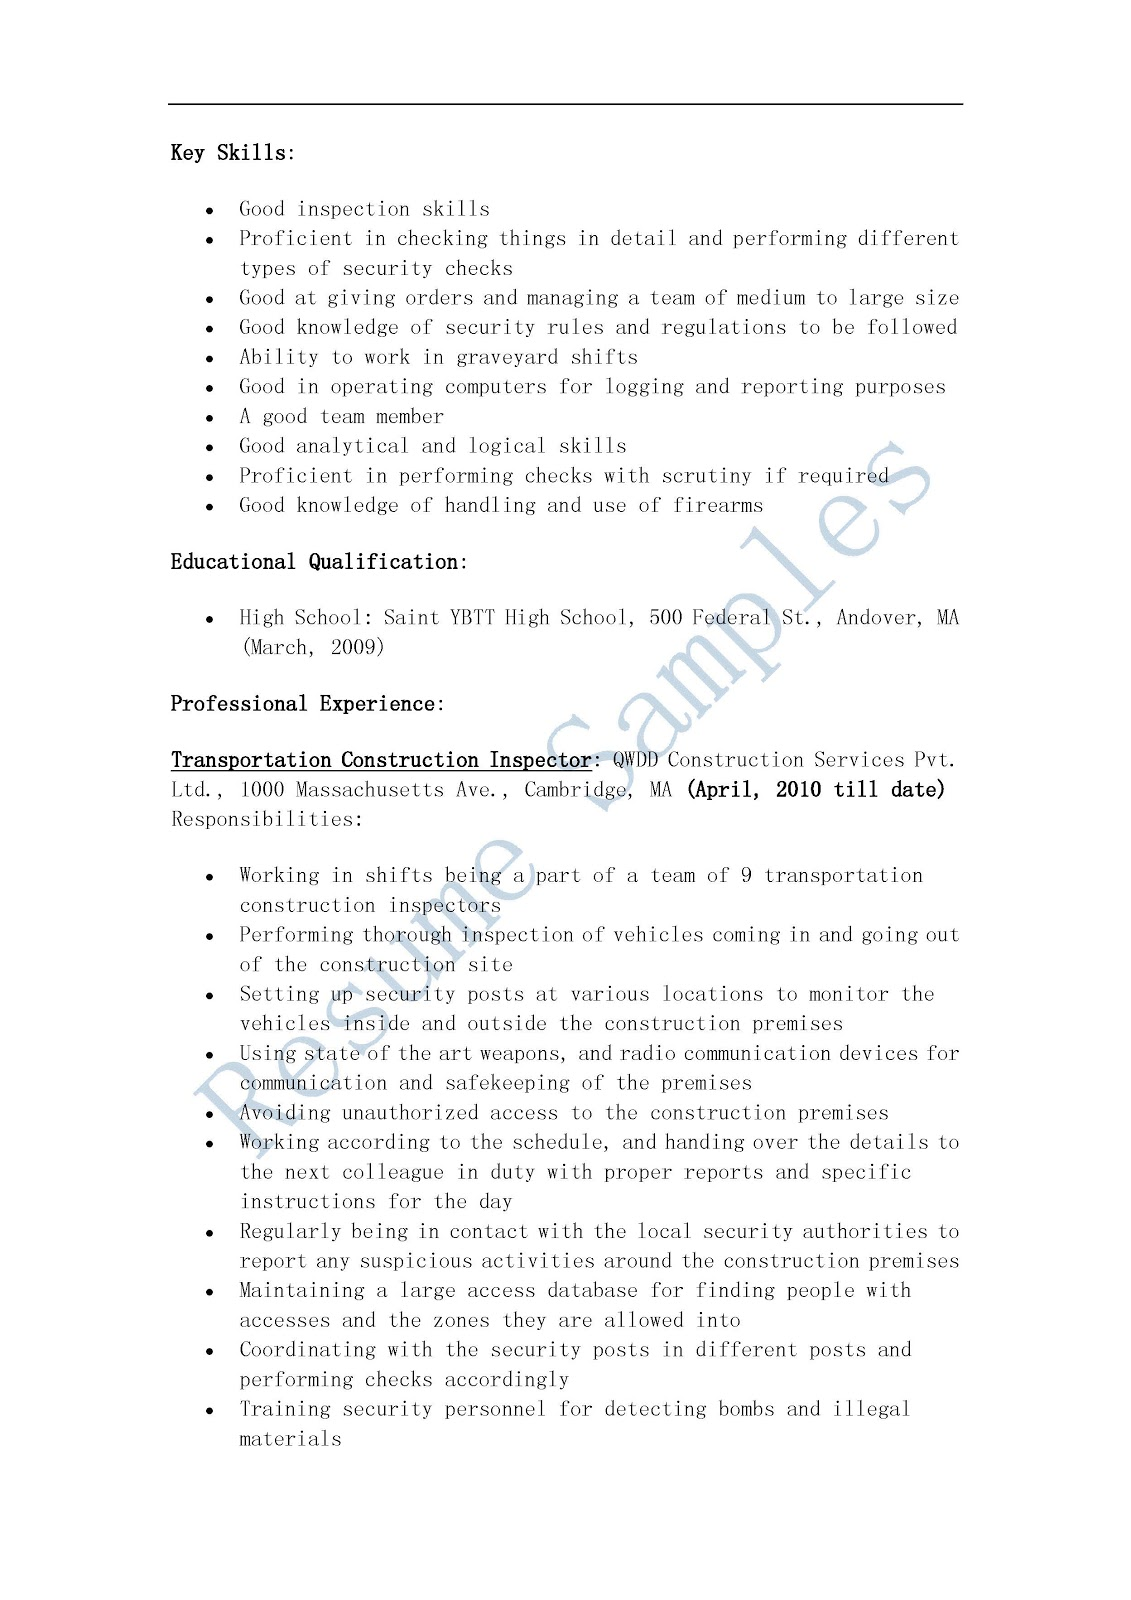 Tax Inspector Cover Letter Example